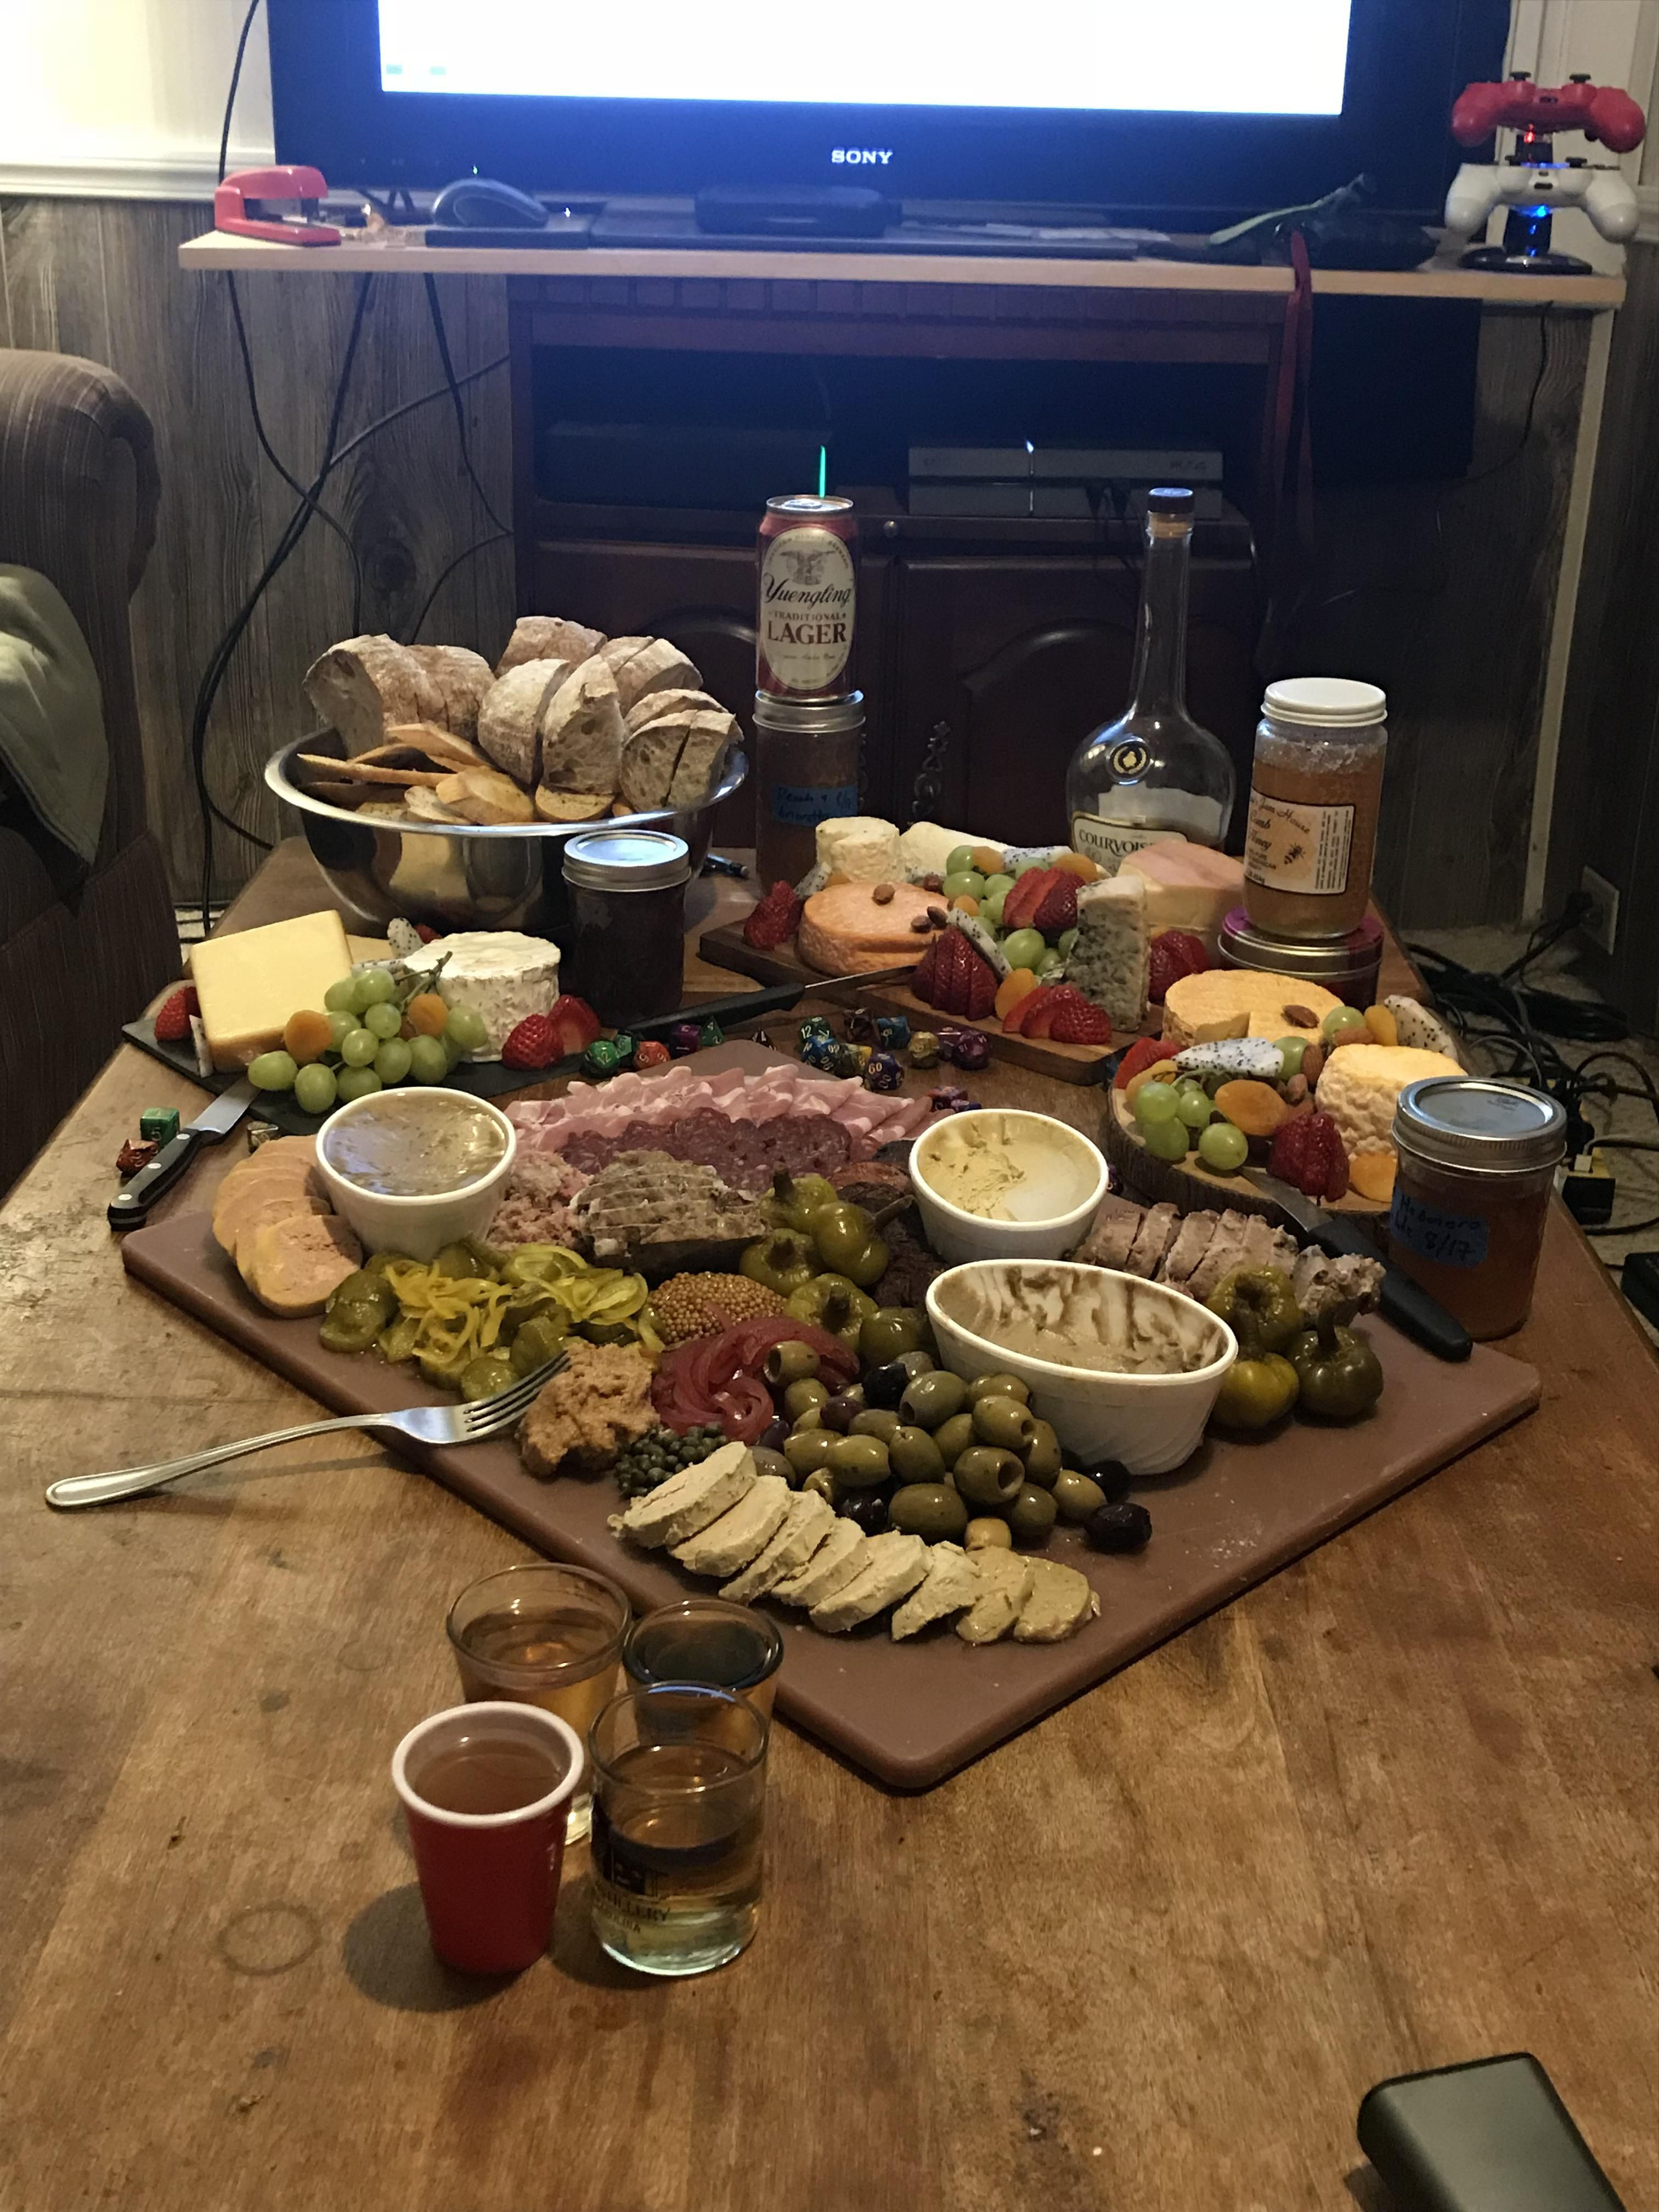 Charcuterie and cheese board before game night with my boys